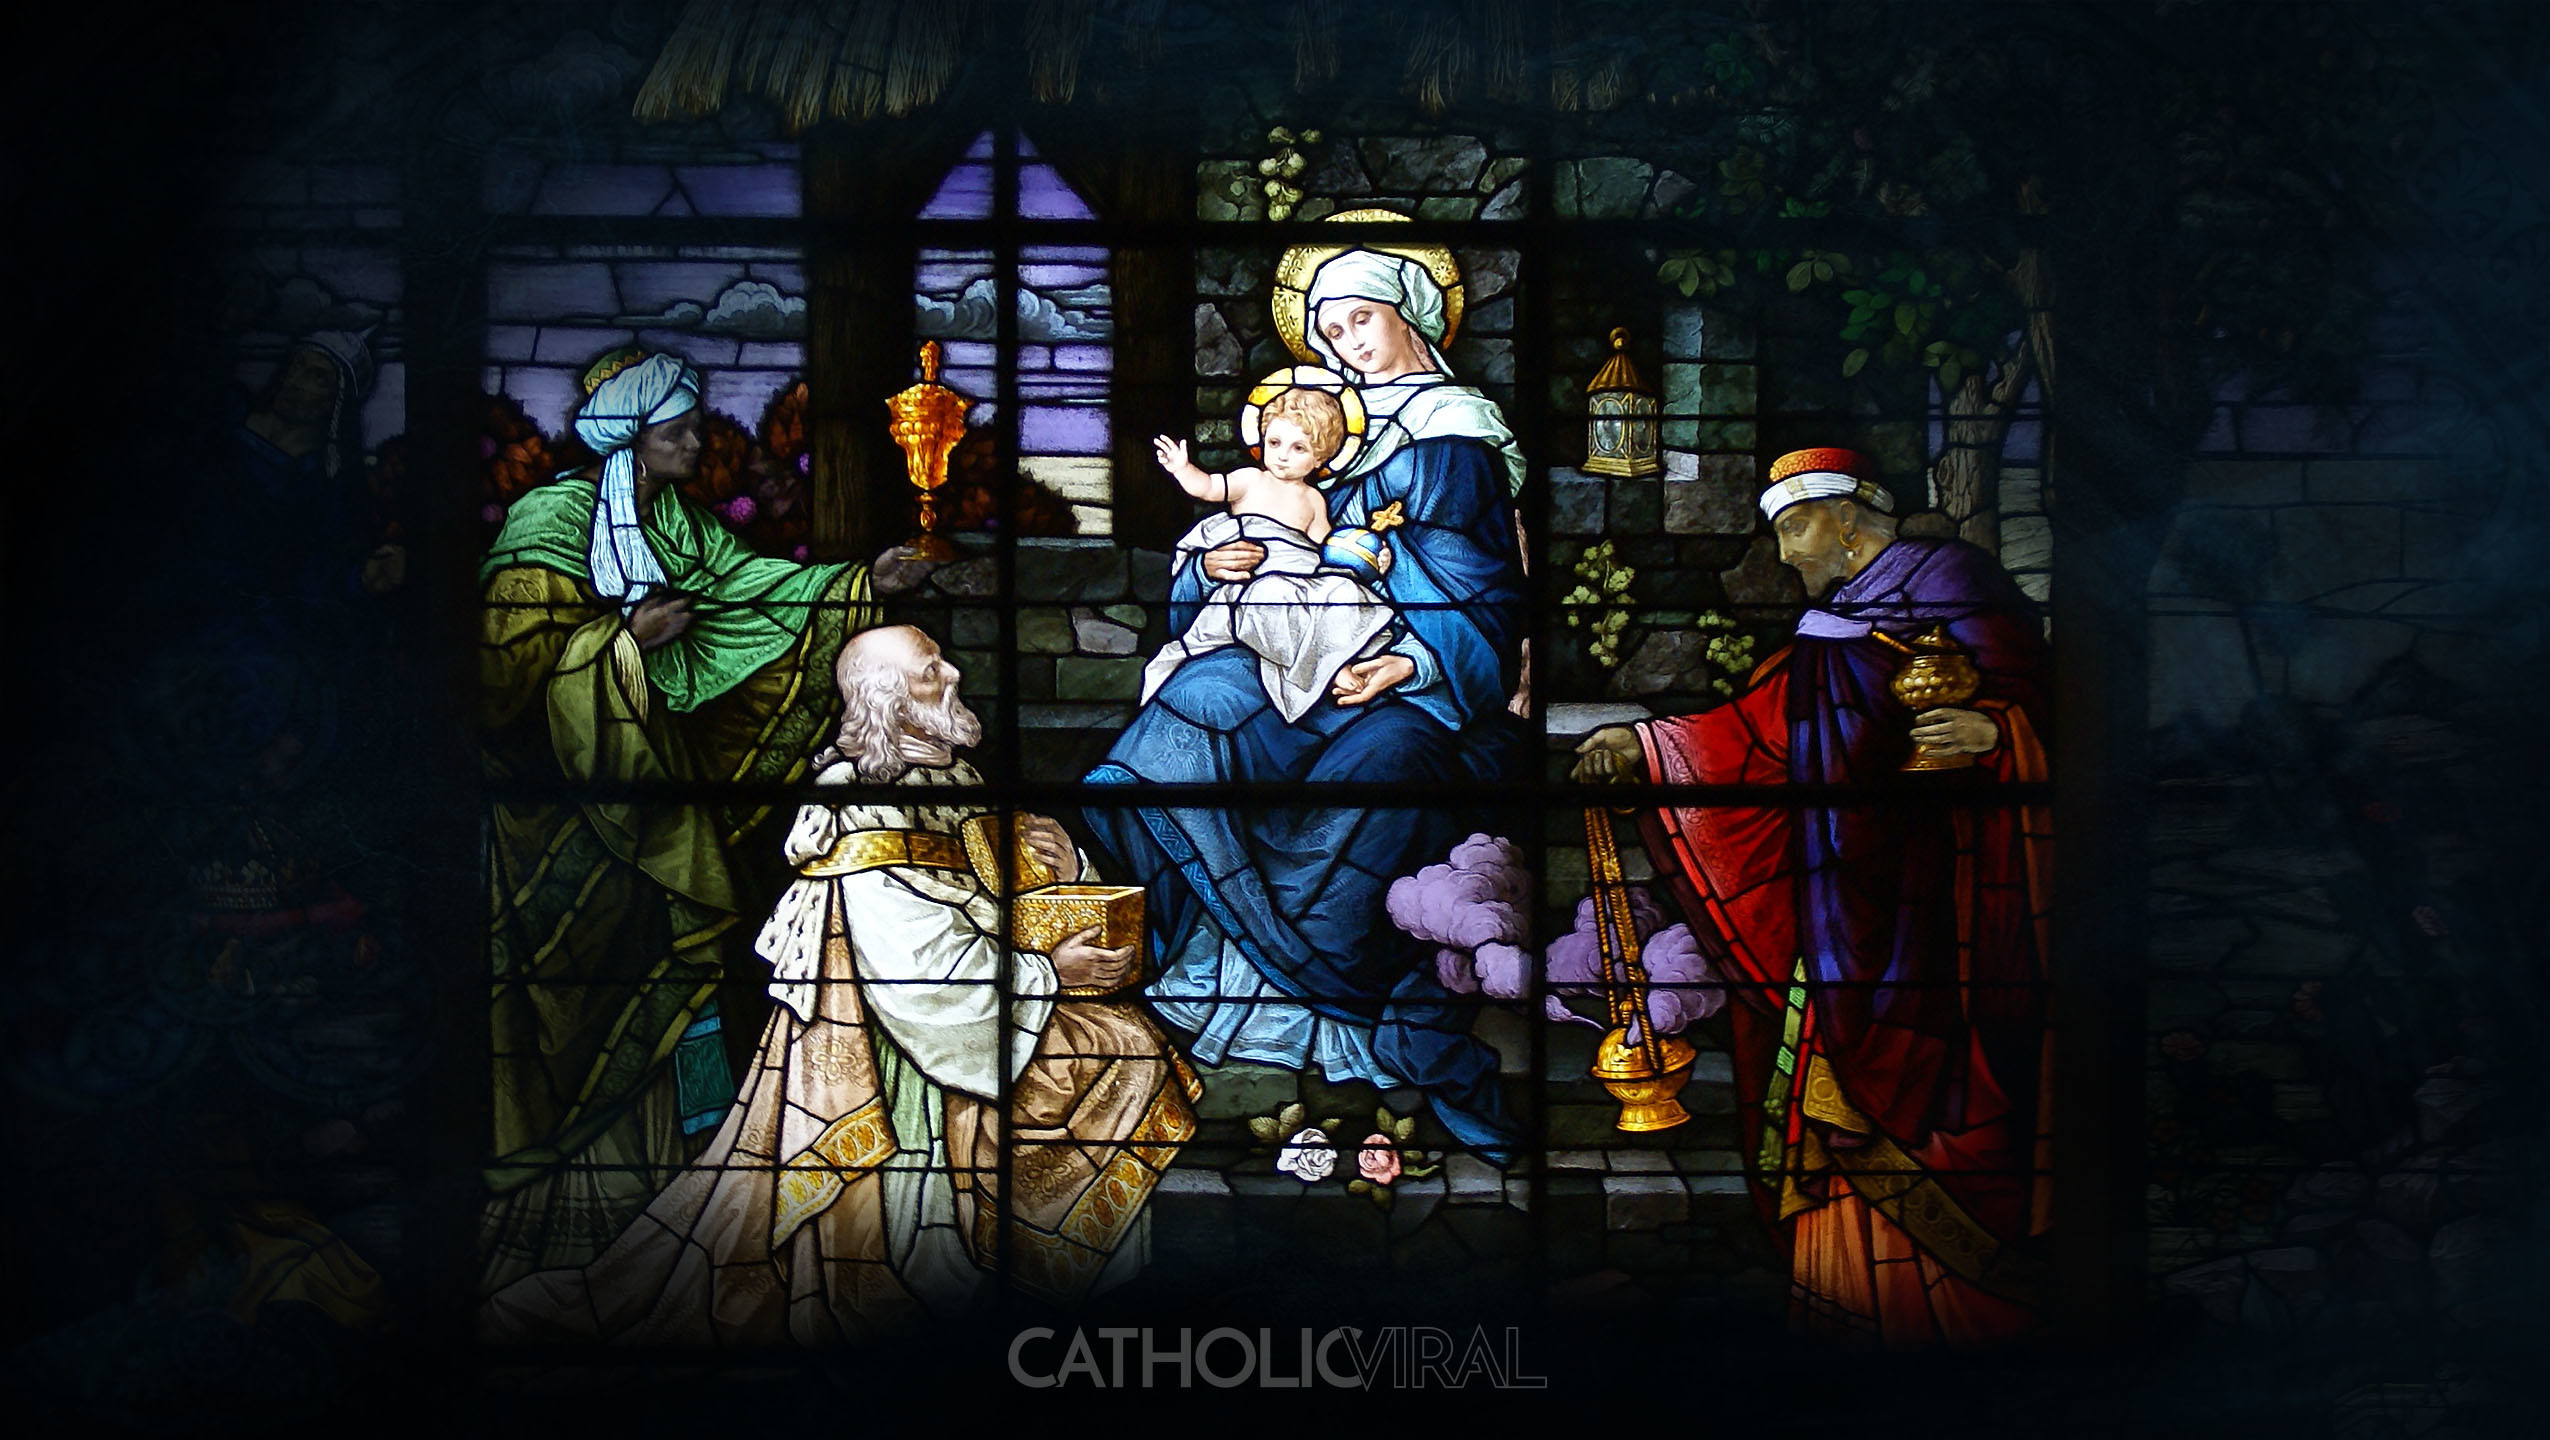 Res: 2550x1440, 17 Stunning Stained-Glass Windows of the Nativity - HD Christmas Wallpapers  - The Adoration